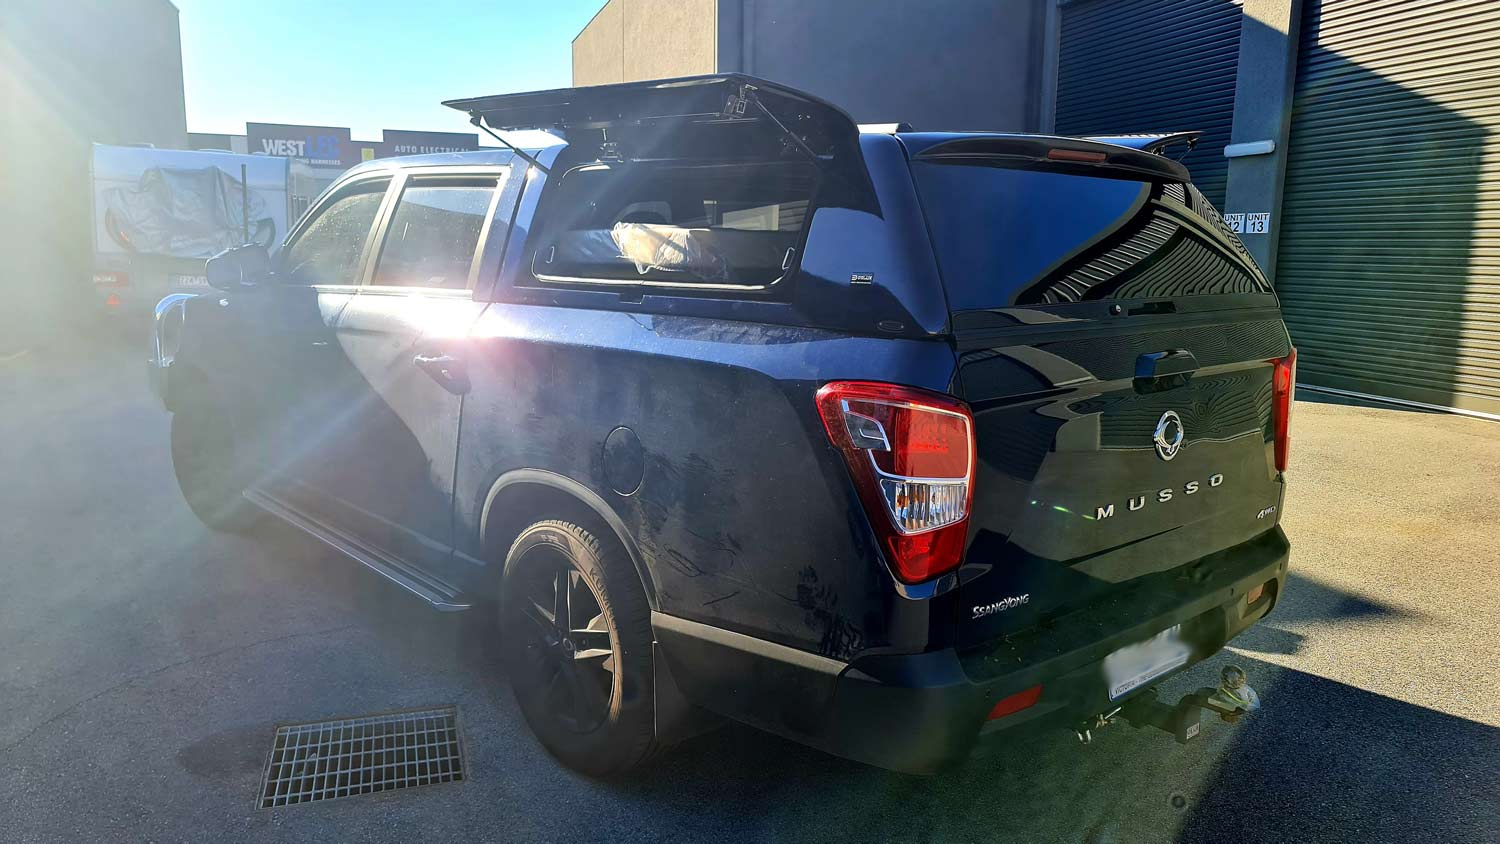 Force Pro Plus Ssang Yong Musso -rear view